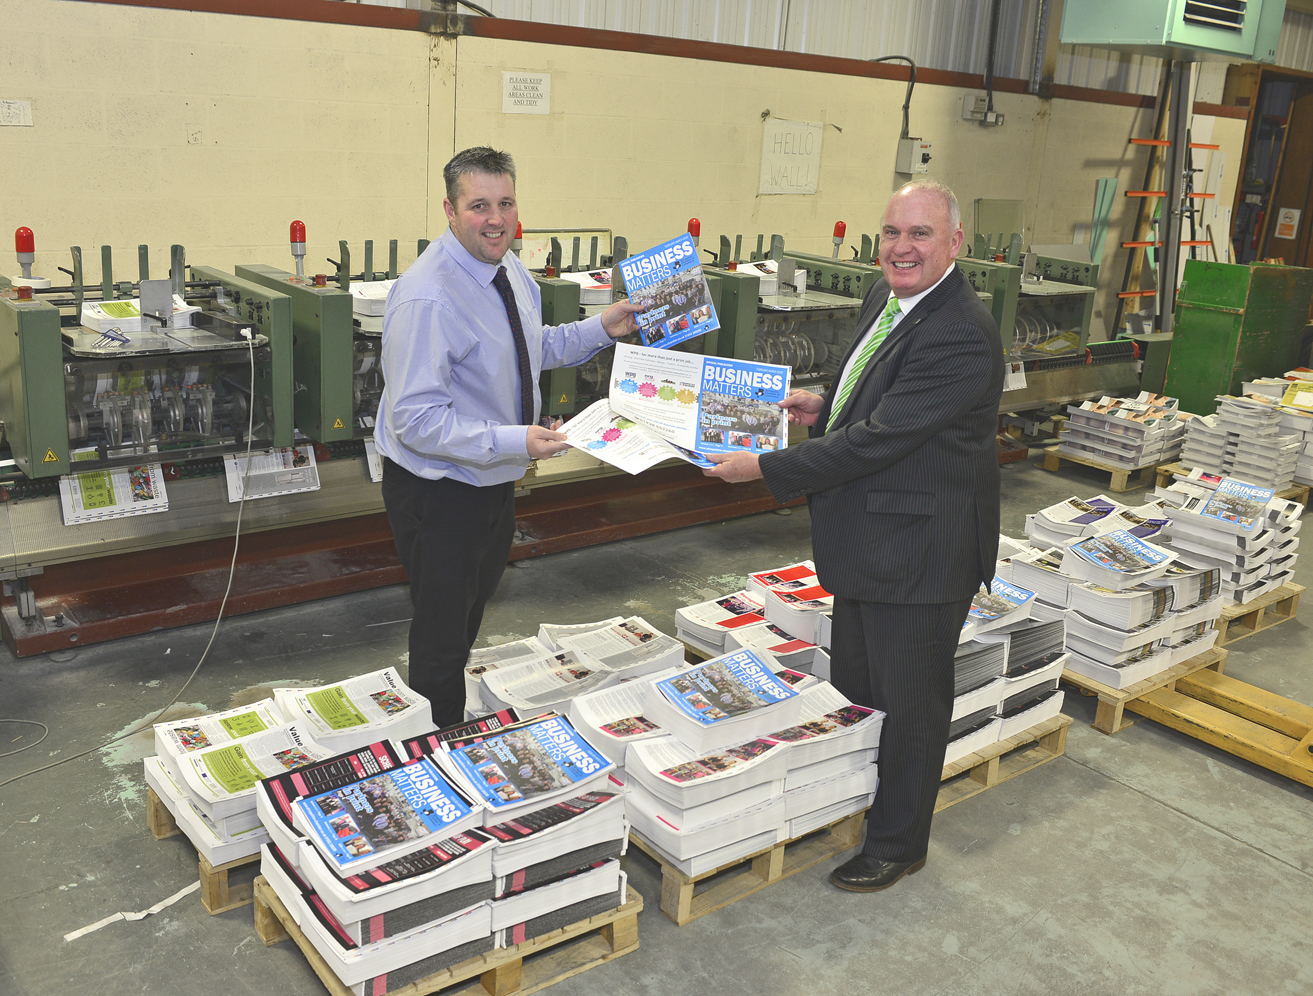 WPG Ltd becomes a patron of the Shropshire Chamber of Commerce